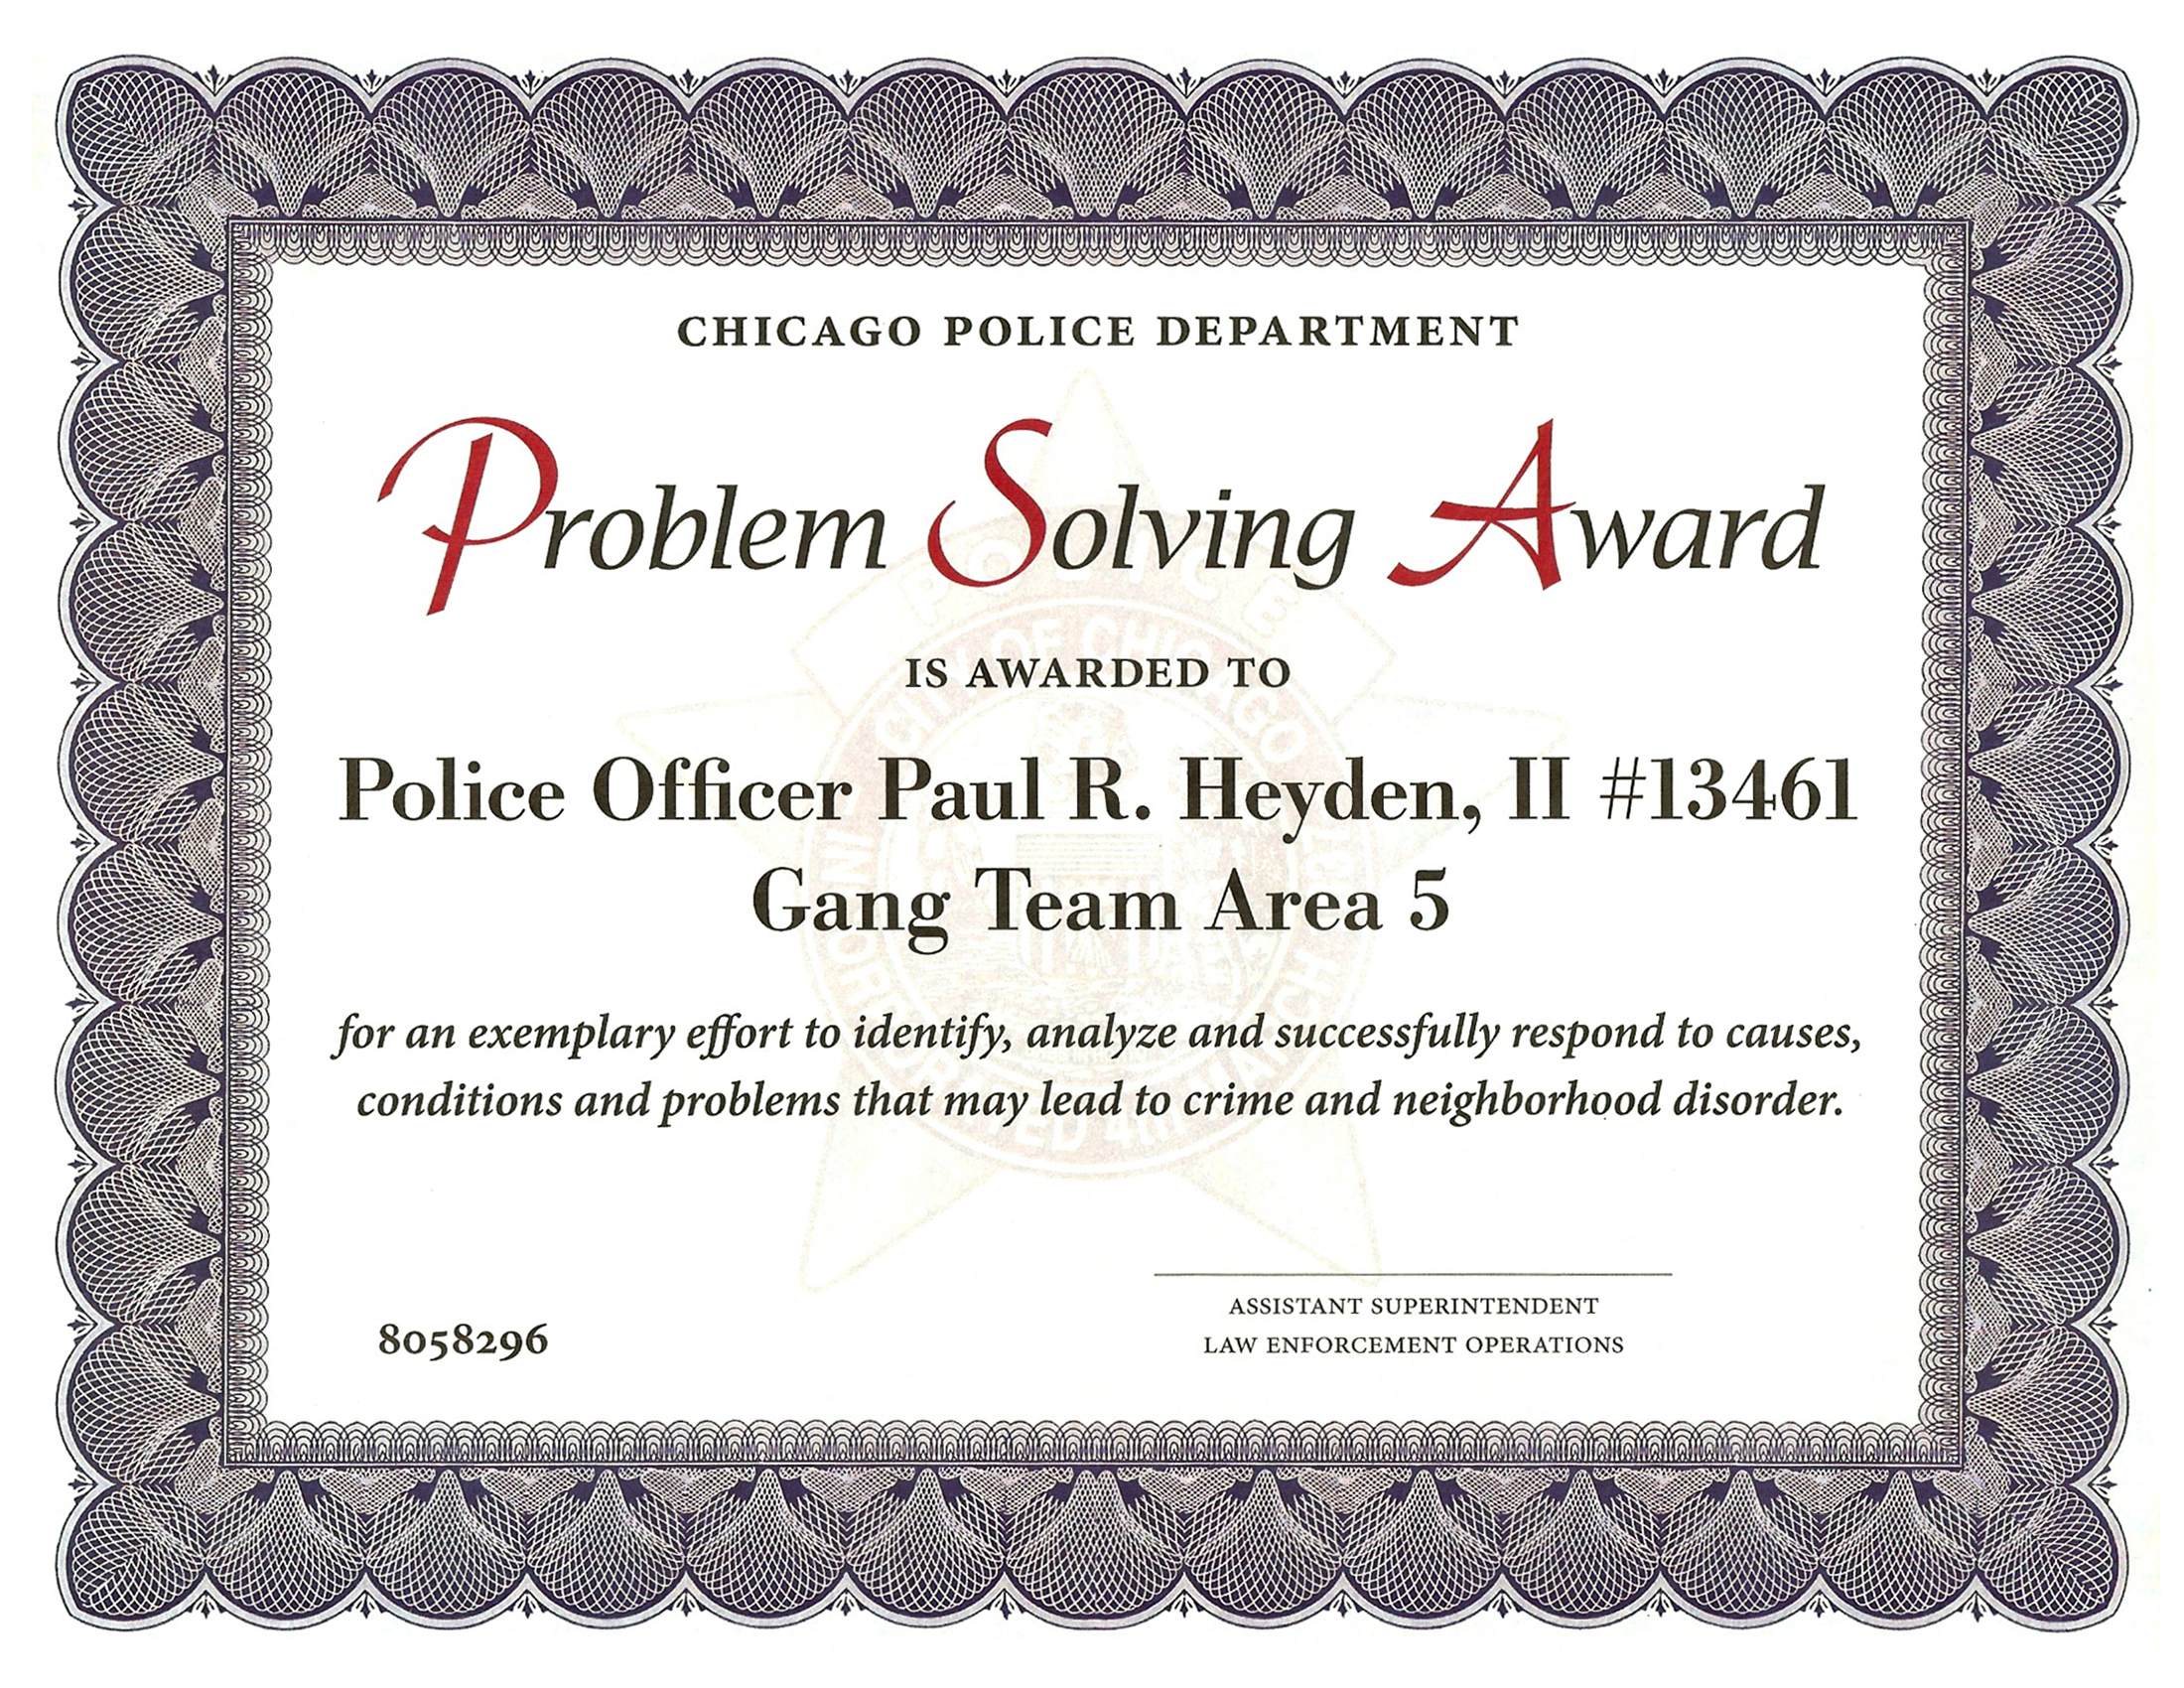 Problem Solving Award Certificate